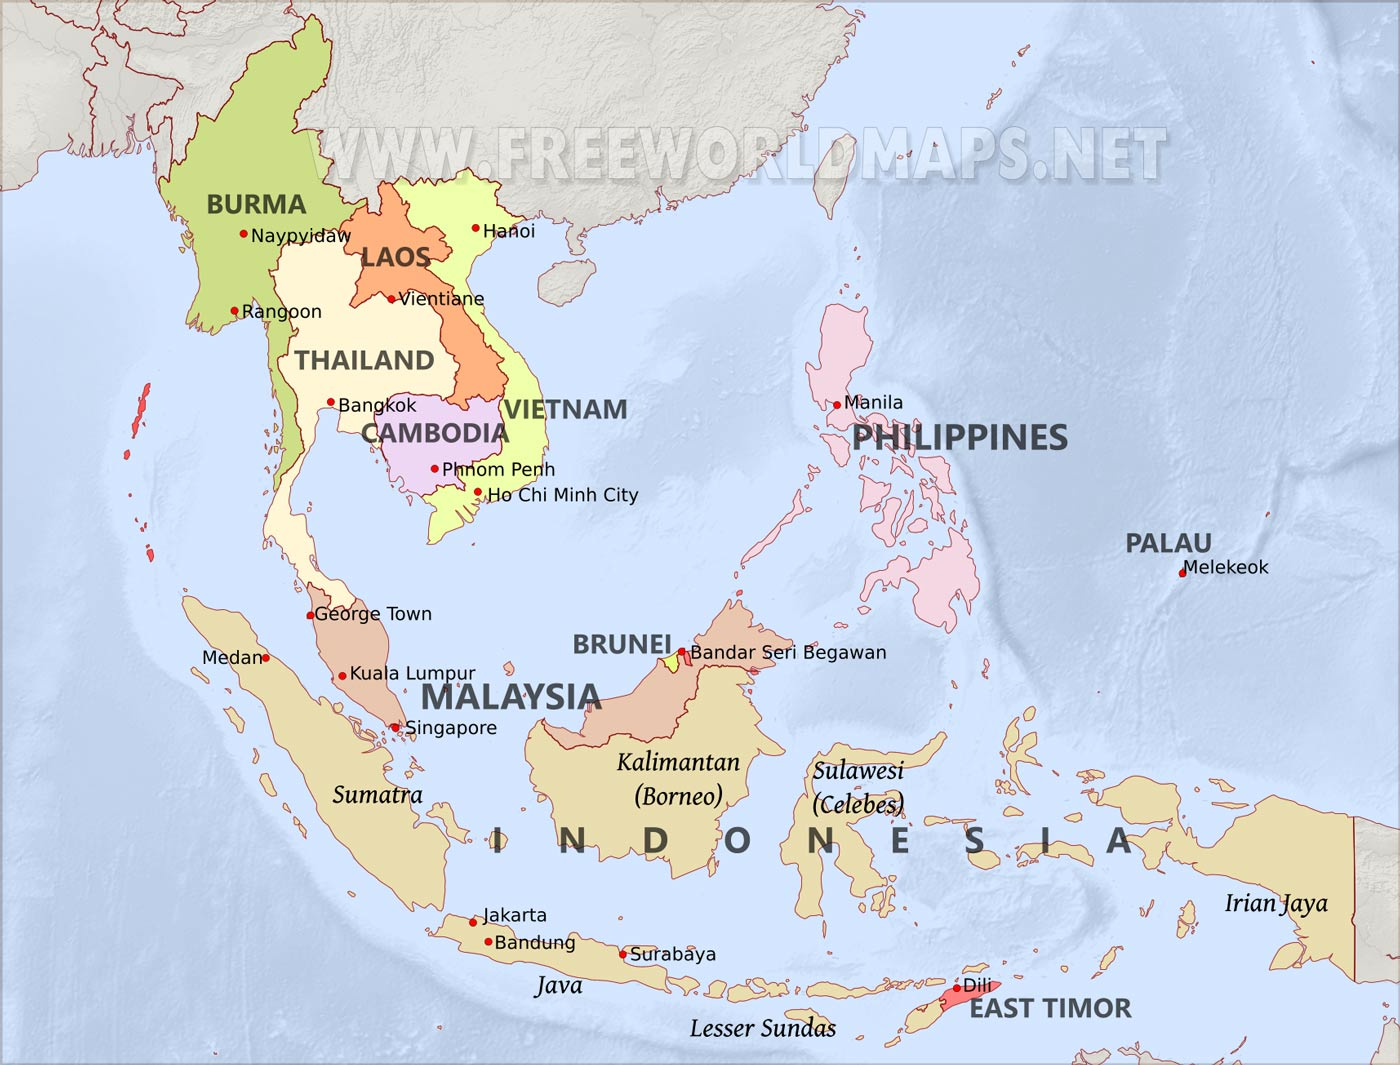 Southeast Asia - by Freeworldmaps.net